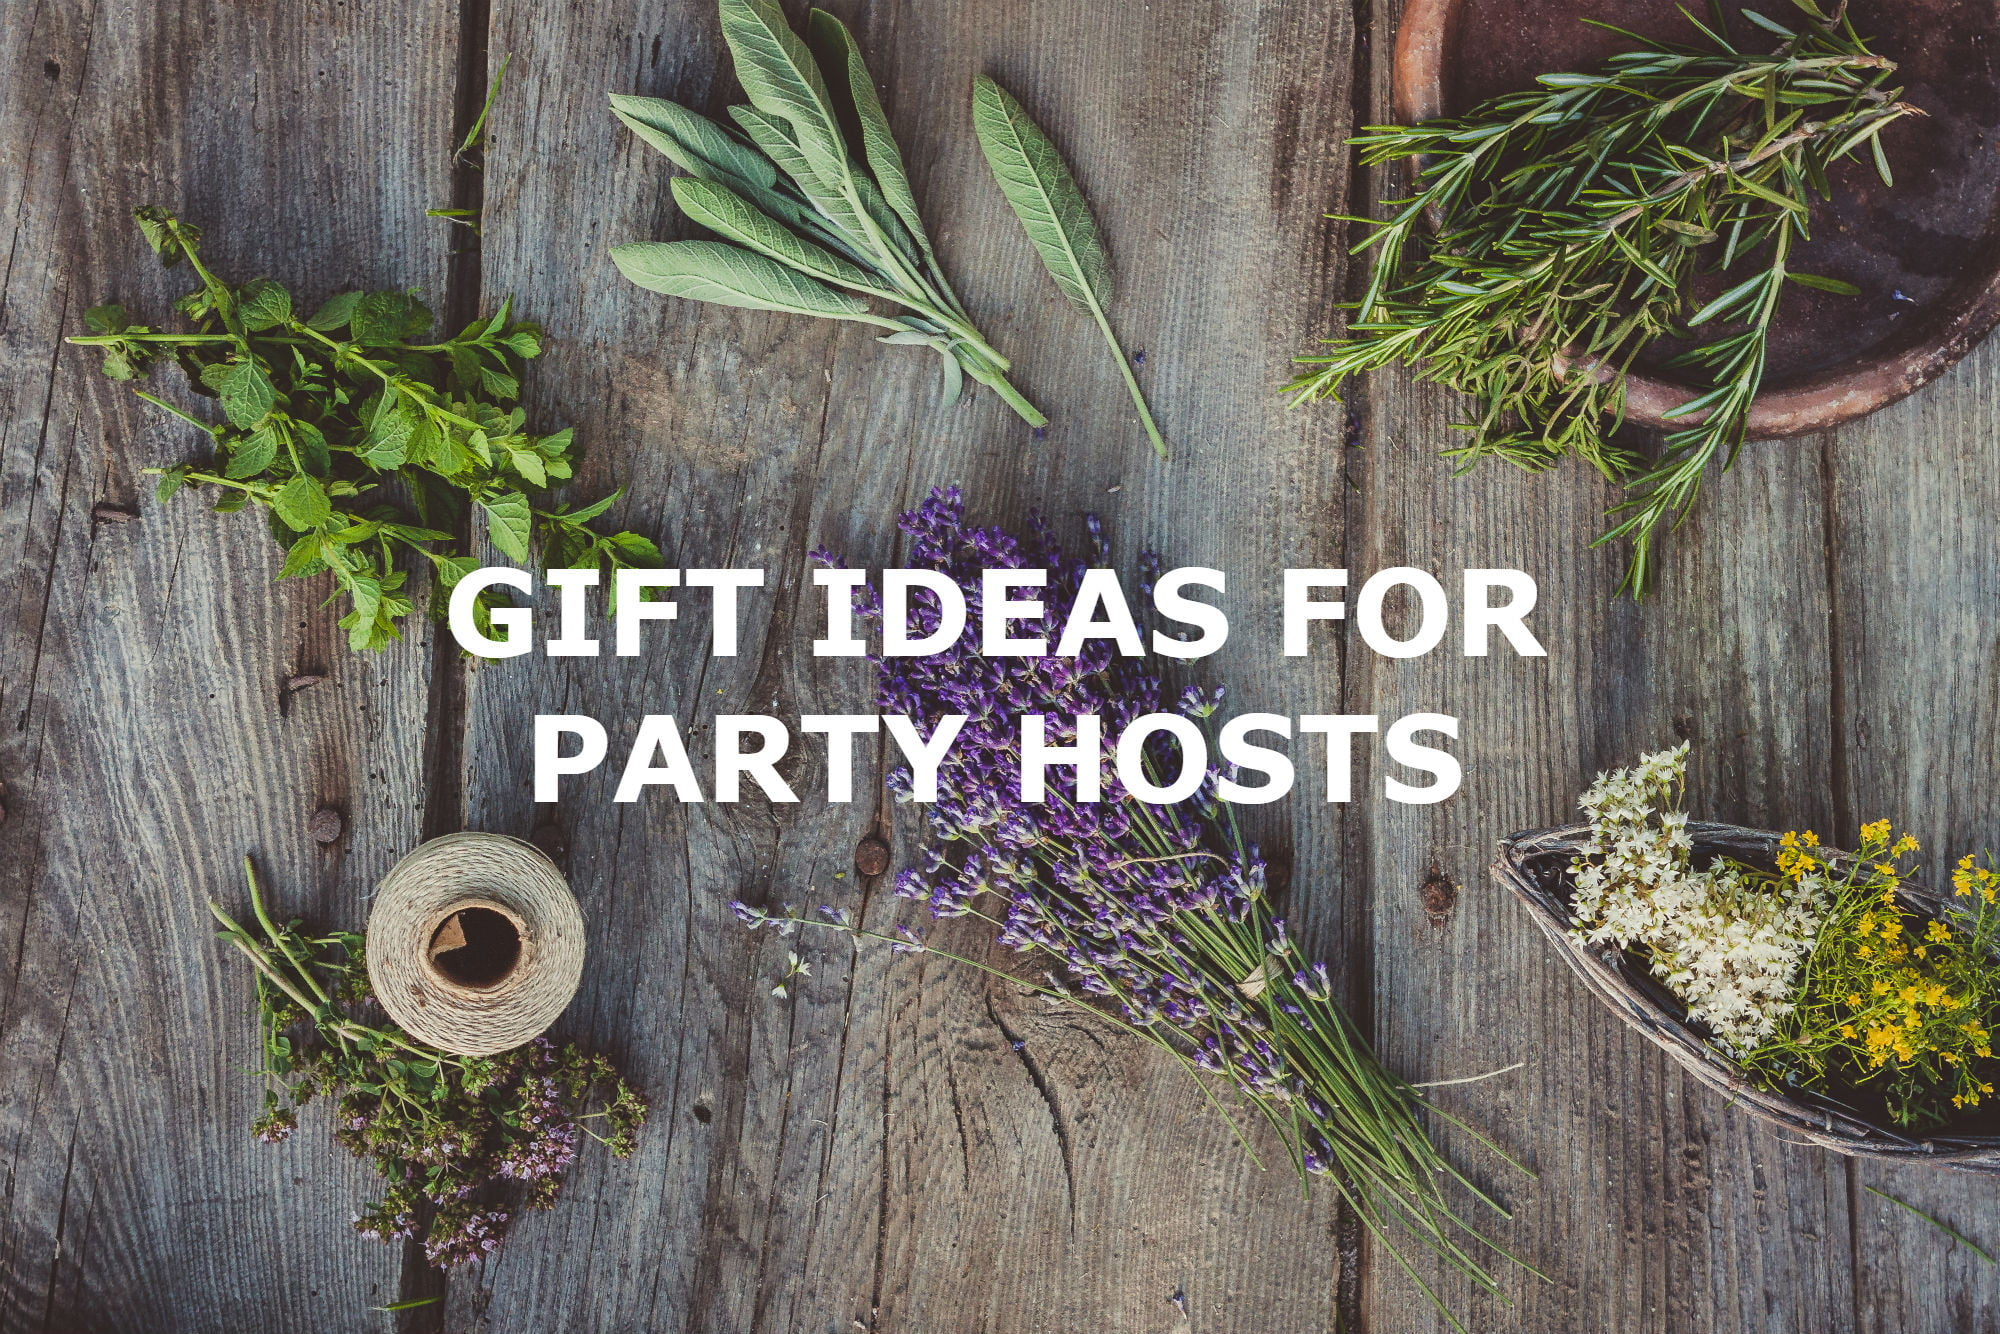 GIFT IDEAS FOR PARTY HOSTS